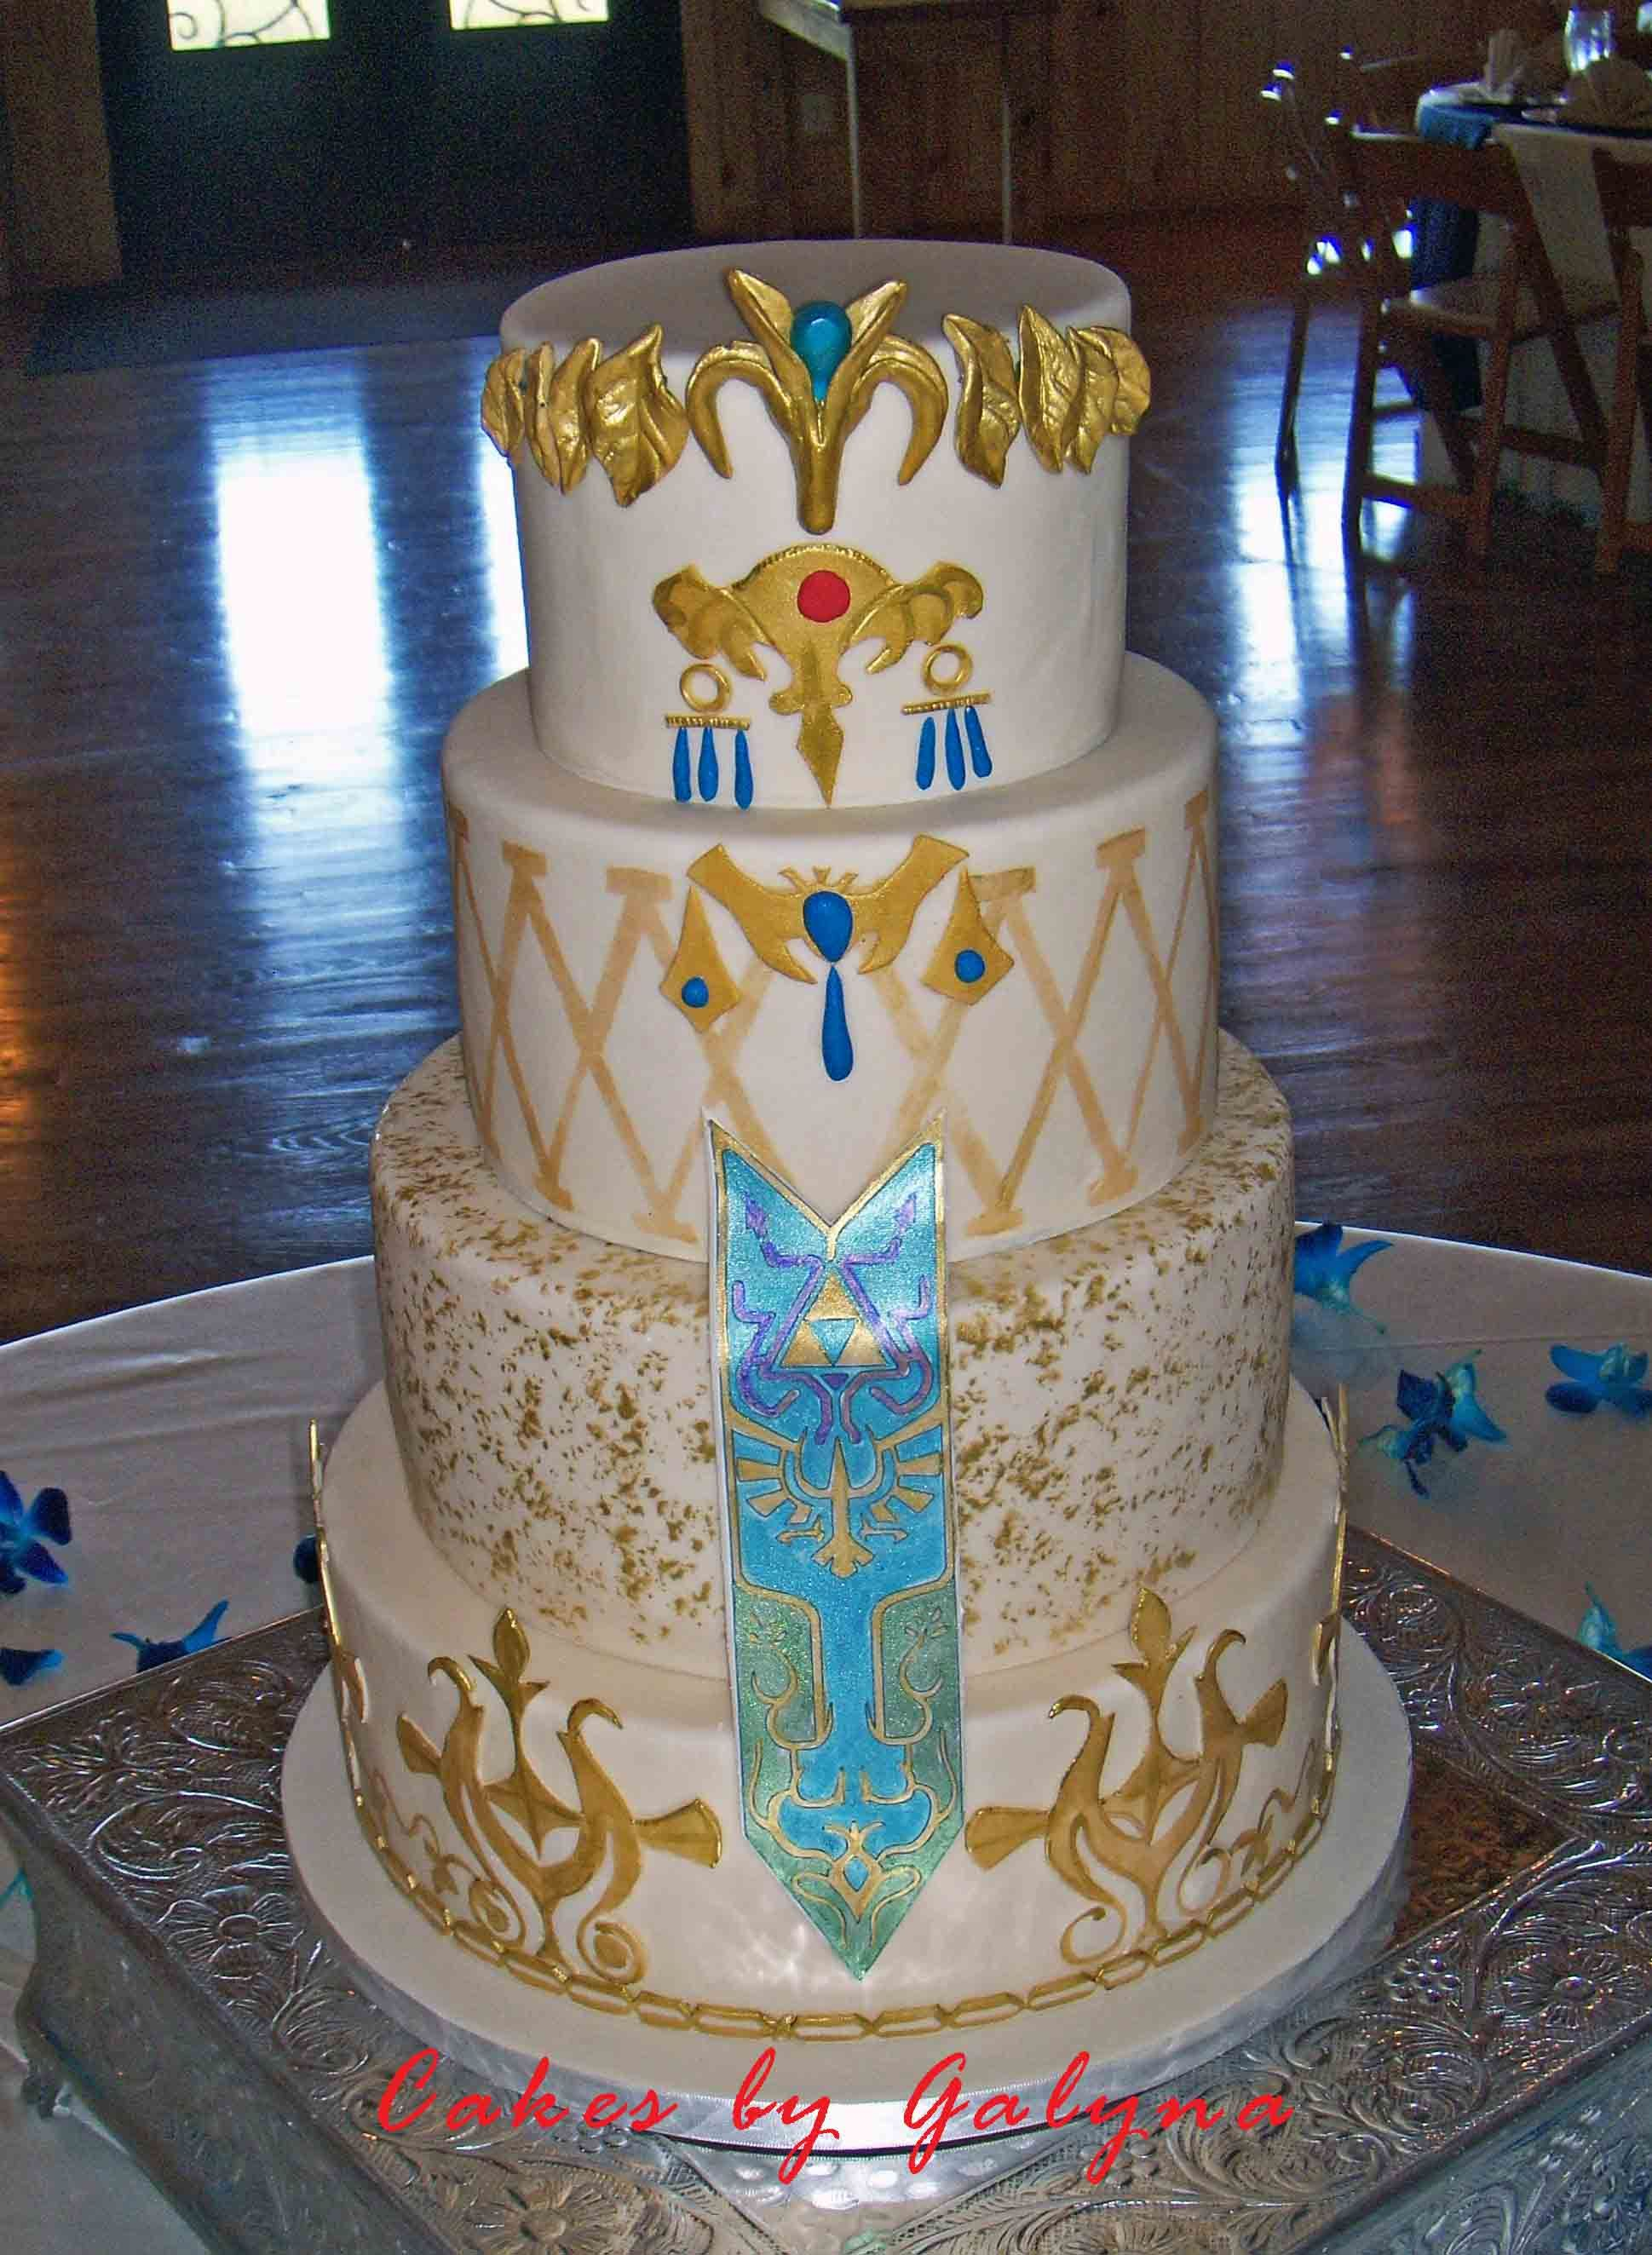 This Is the Most Hated Wedding Cake Trend Right Now This Is the Most Hated Wedding Cake Trend Right Now new photo